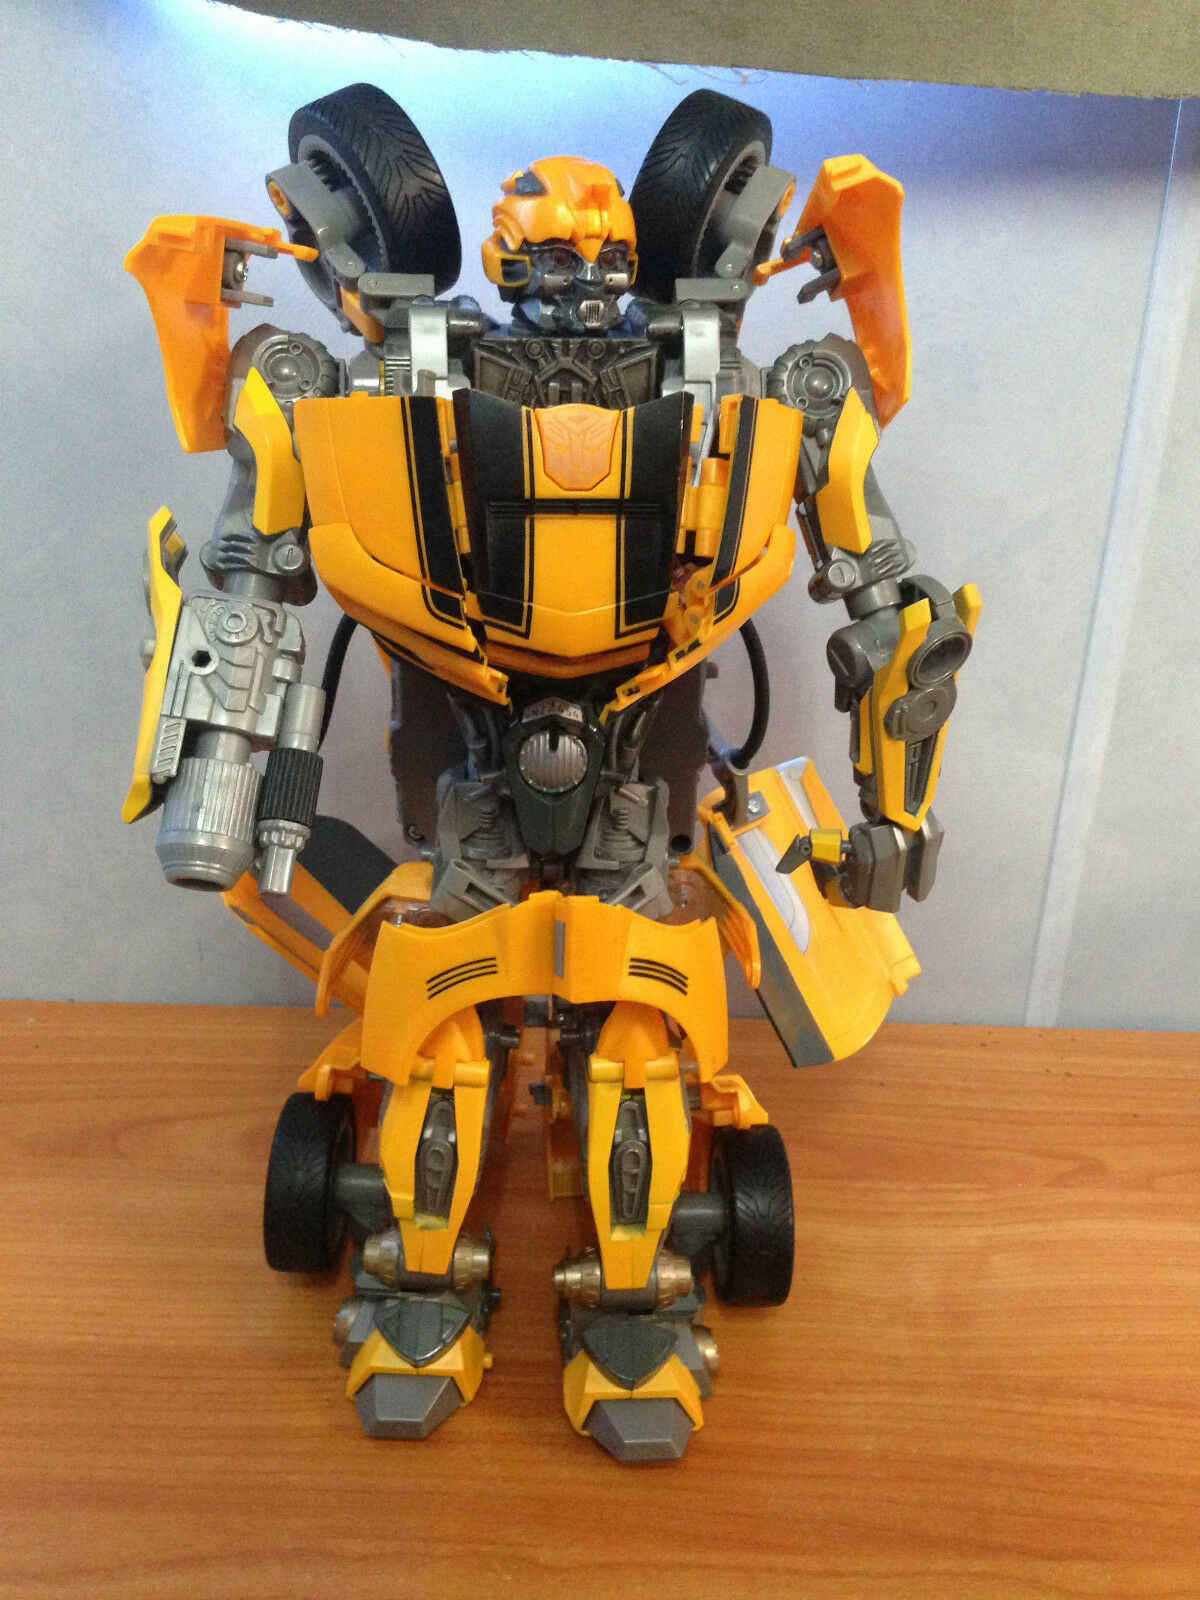 Transformers Ultimate 12 Inch Bumblebee Battle Charged Revenge of the Fallen